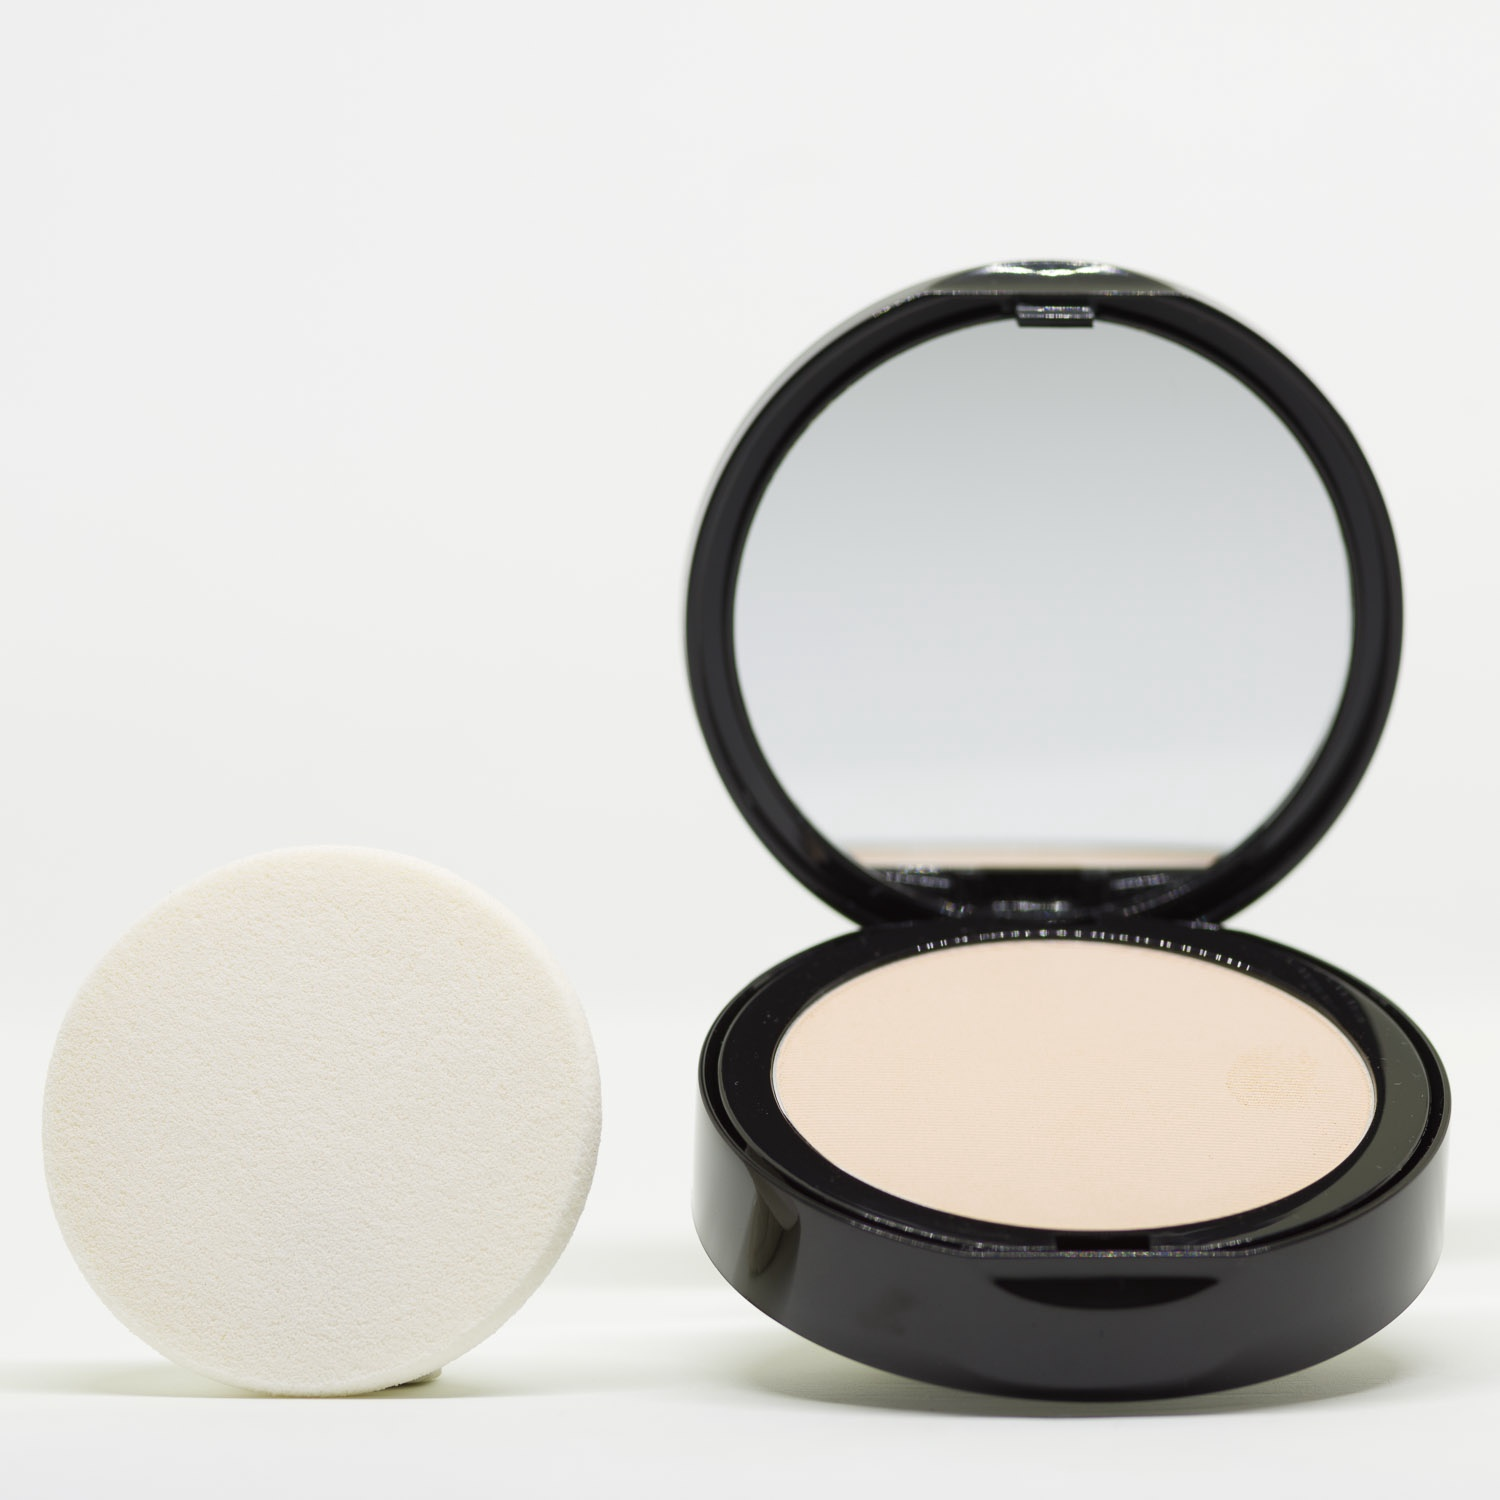 PC2 Warm Yellow Pressed Powder Mineral Foundation